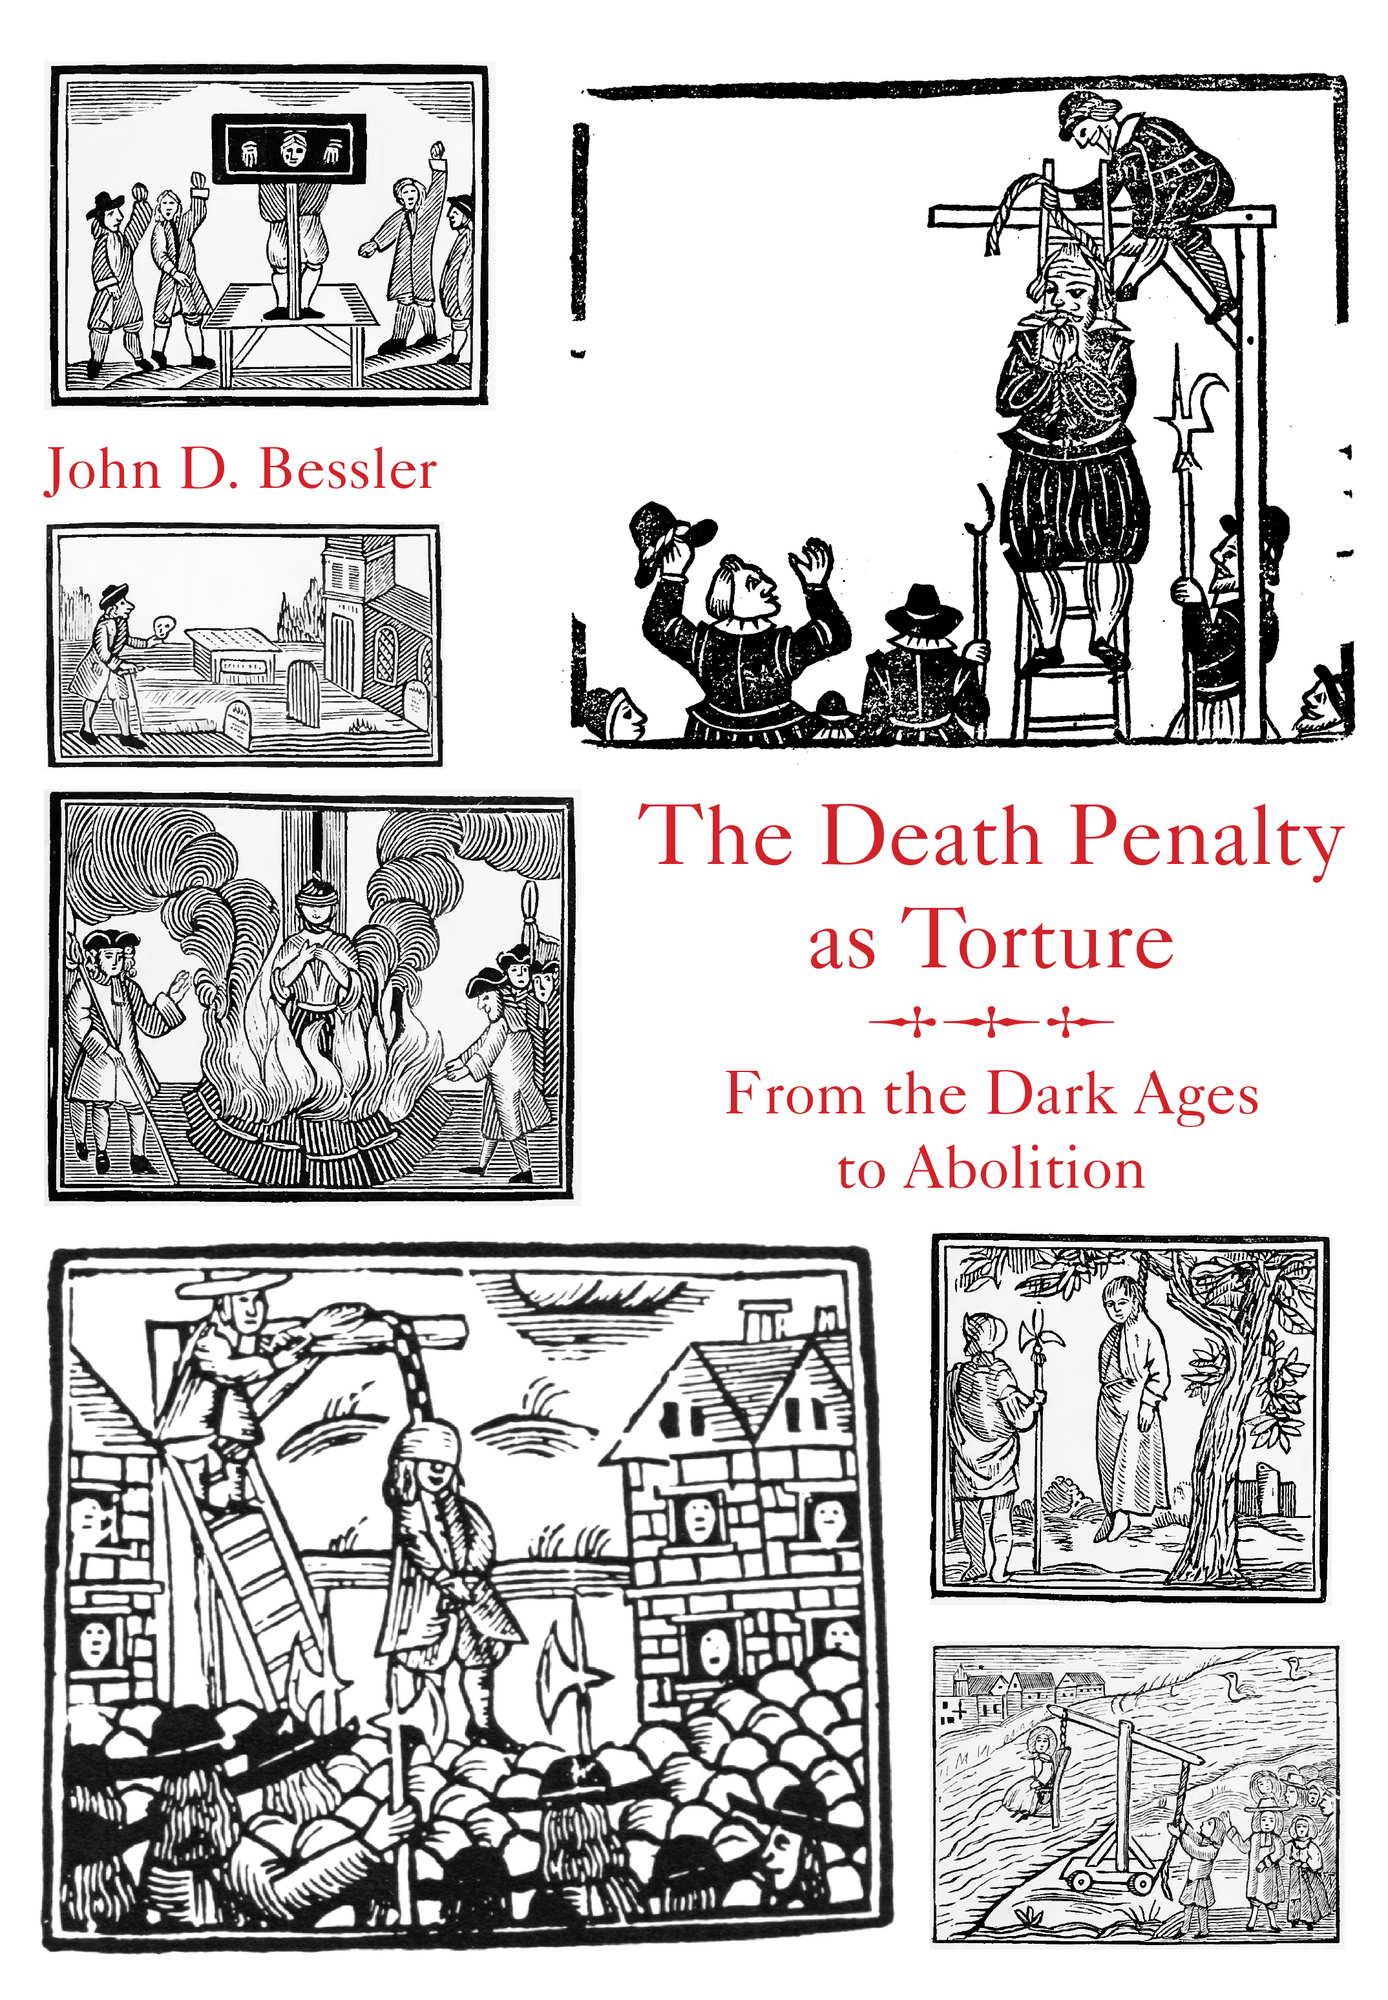 on the death penalty Criminal justice: capital punishment focus recent studies have also found that the higher the cost of legal counsel in a death penalty case the less likely the defendant is to receive the death penalty, which calls the fairness of the process into question.